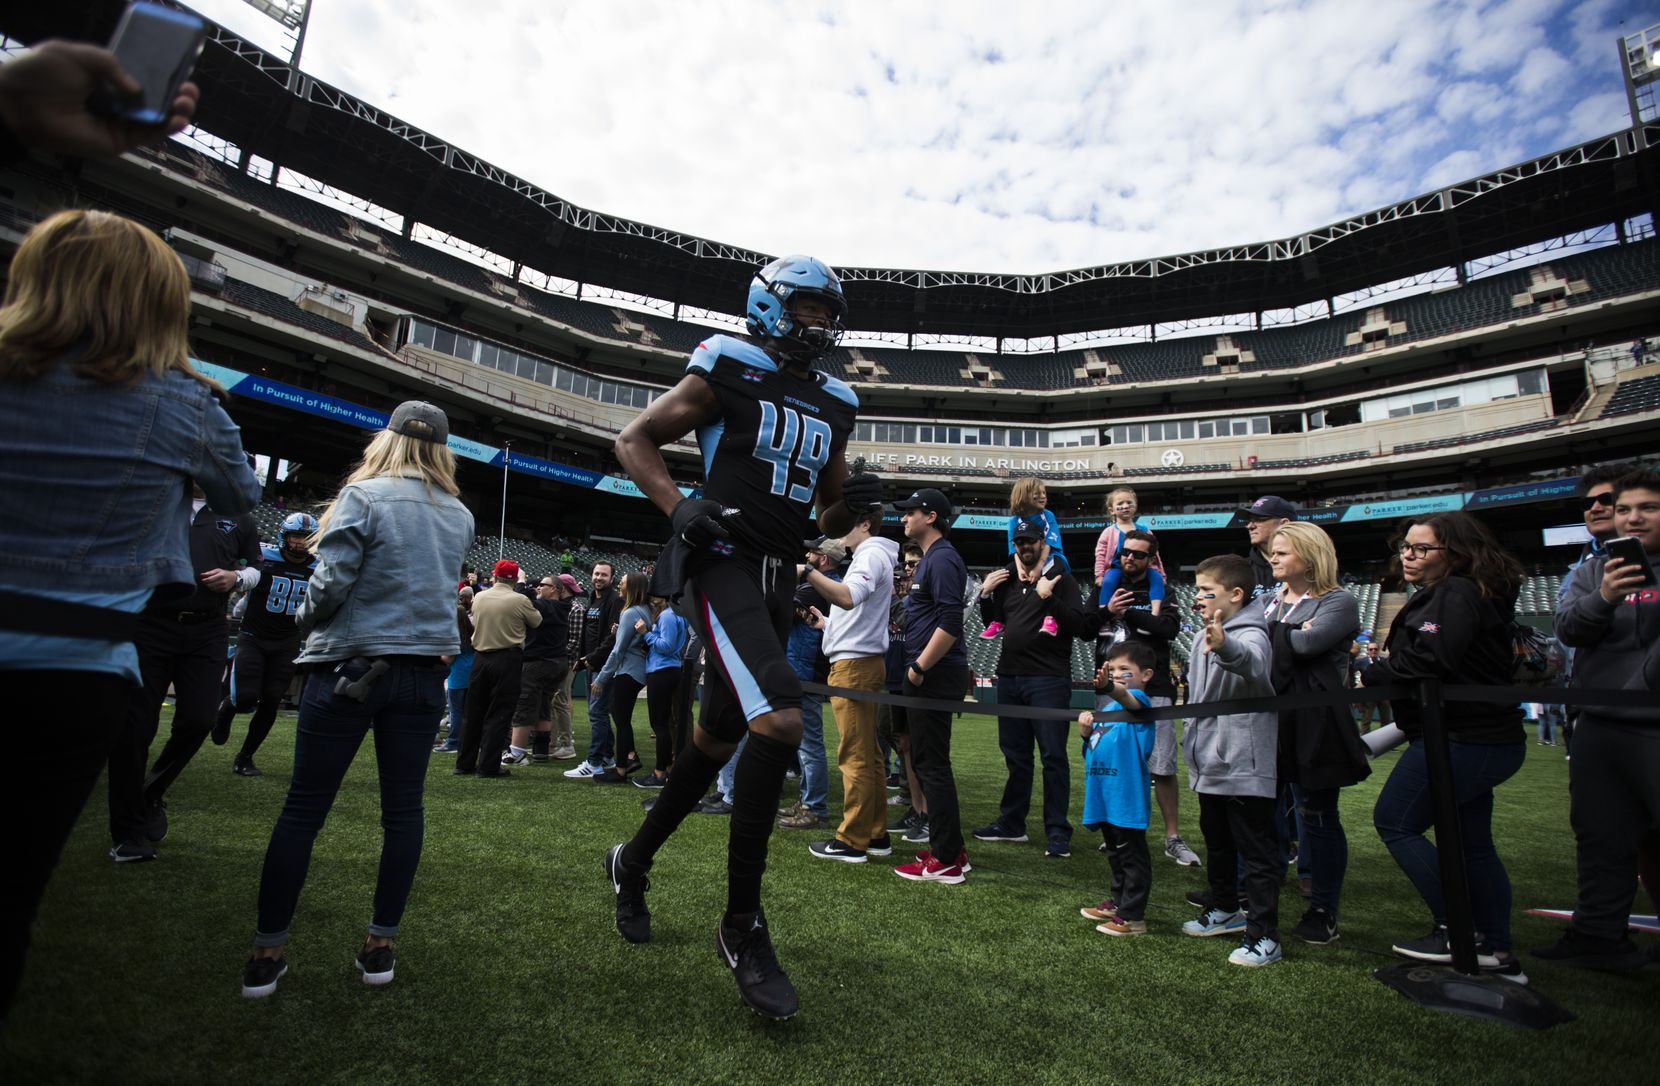 Dallas Renegades tight end Donald Parham (49) runs on the field to warm up before an XFL game between the Dallas Renegades and the New York Guardians on Saturday, March 7, 2020 at Globe Life Park in Arlington.